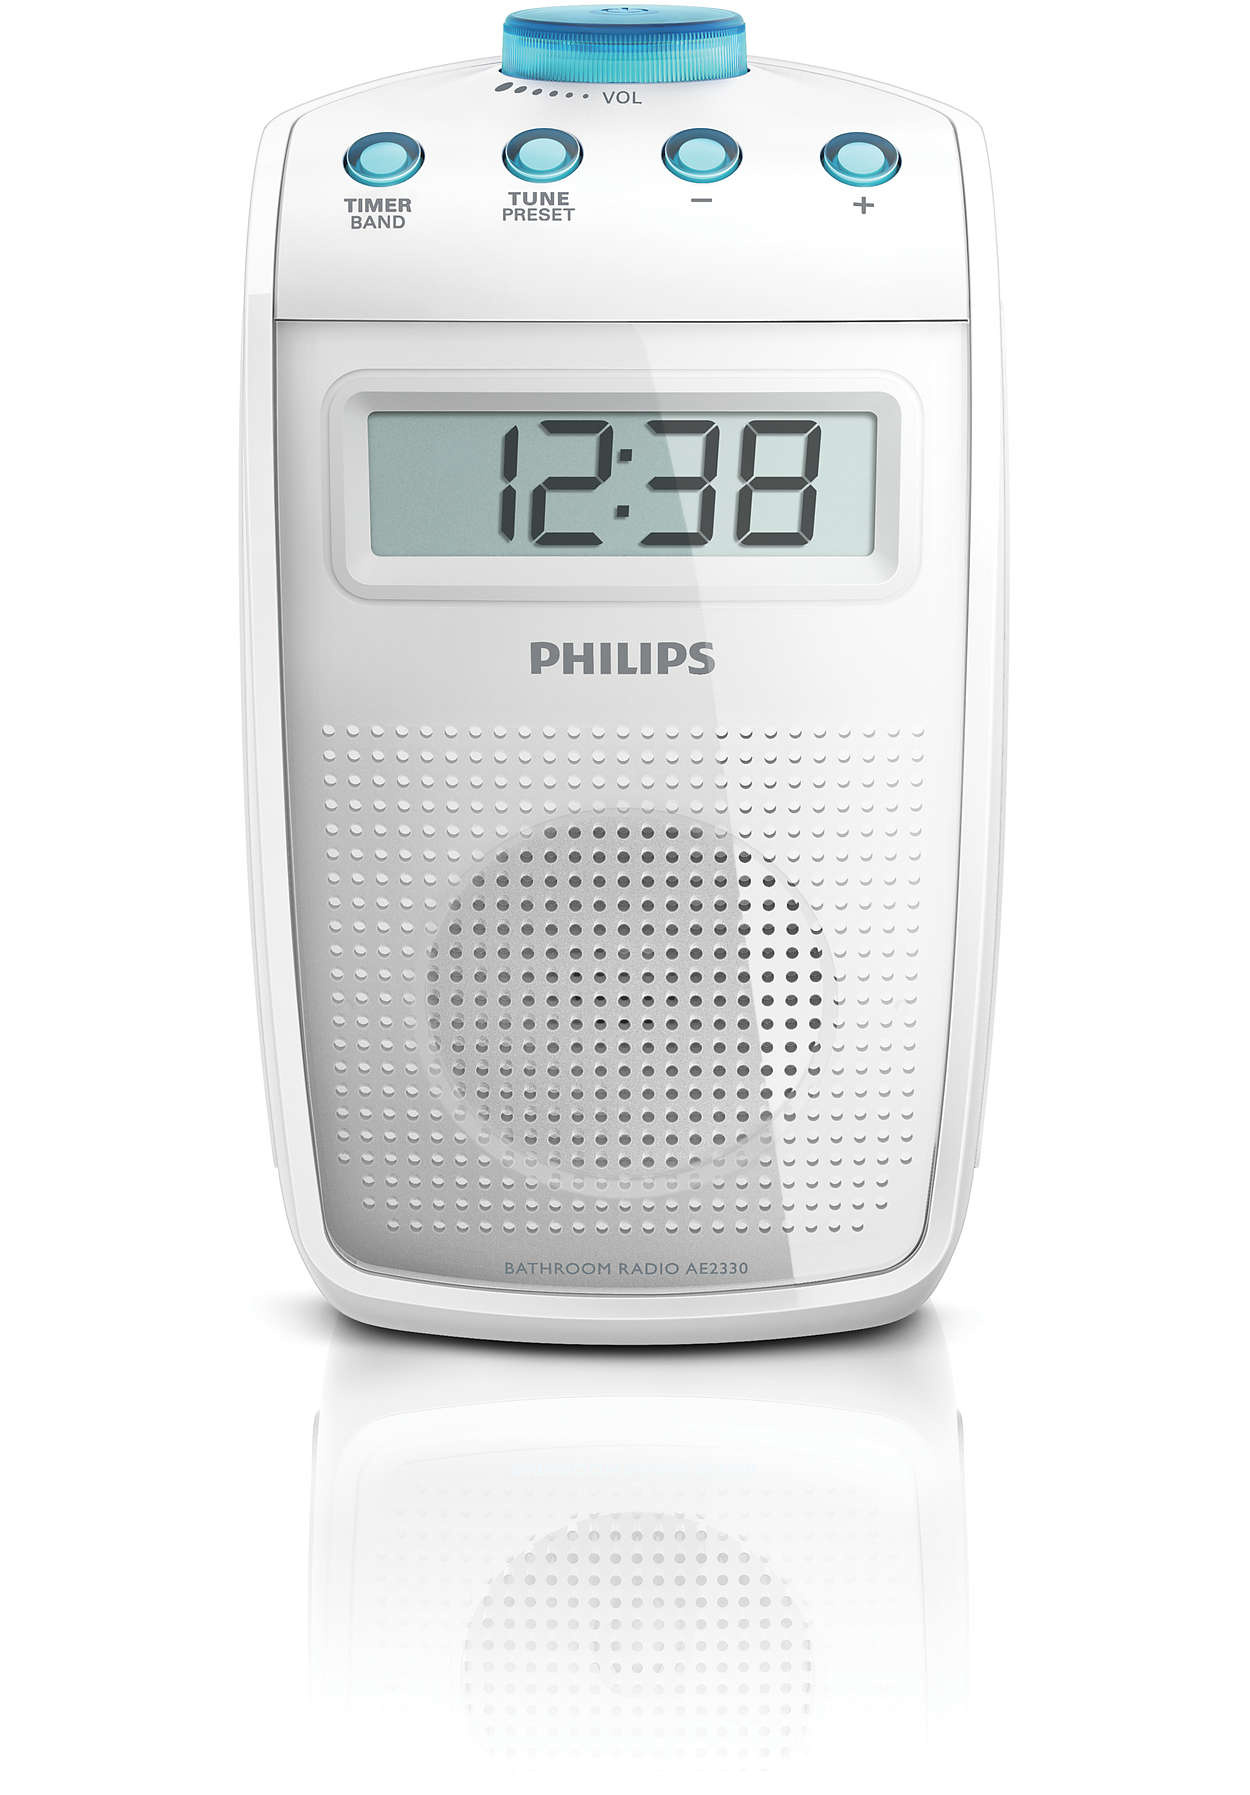 radio de salle de bains ae2330 00 philips. Black Bedroom Furniture Sets. Home Design Ideas